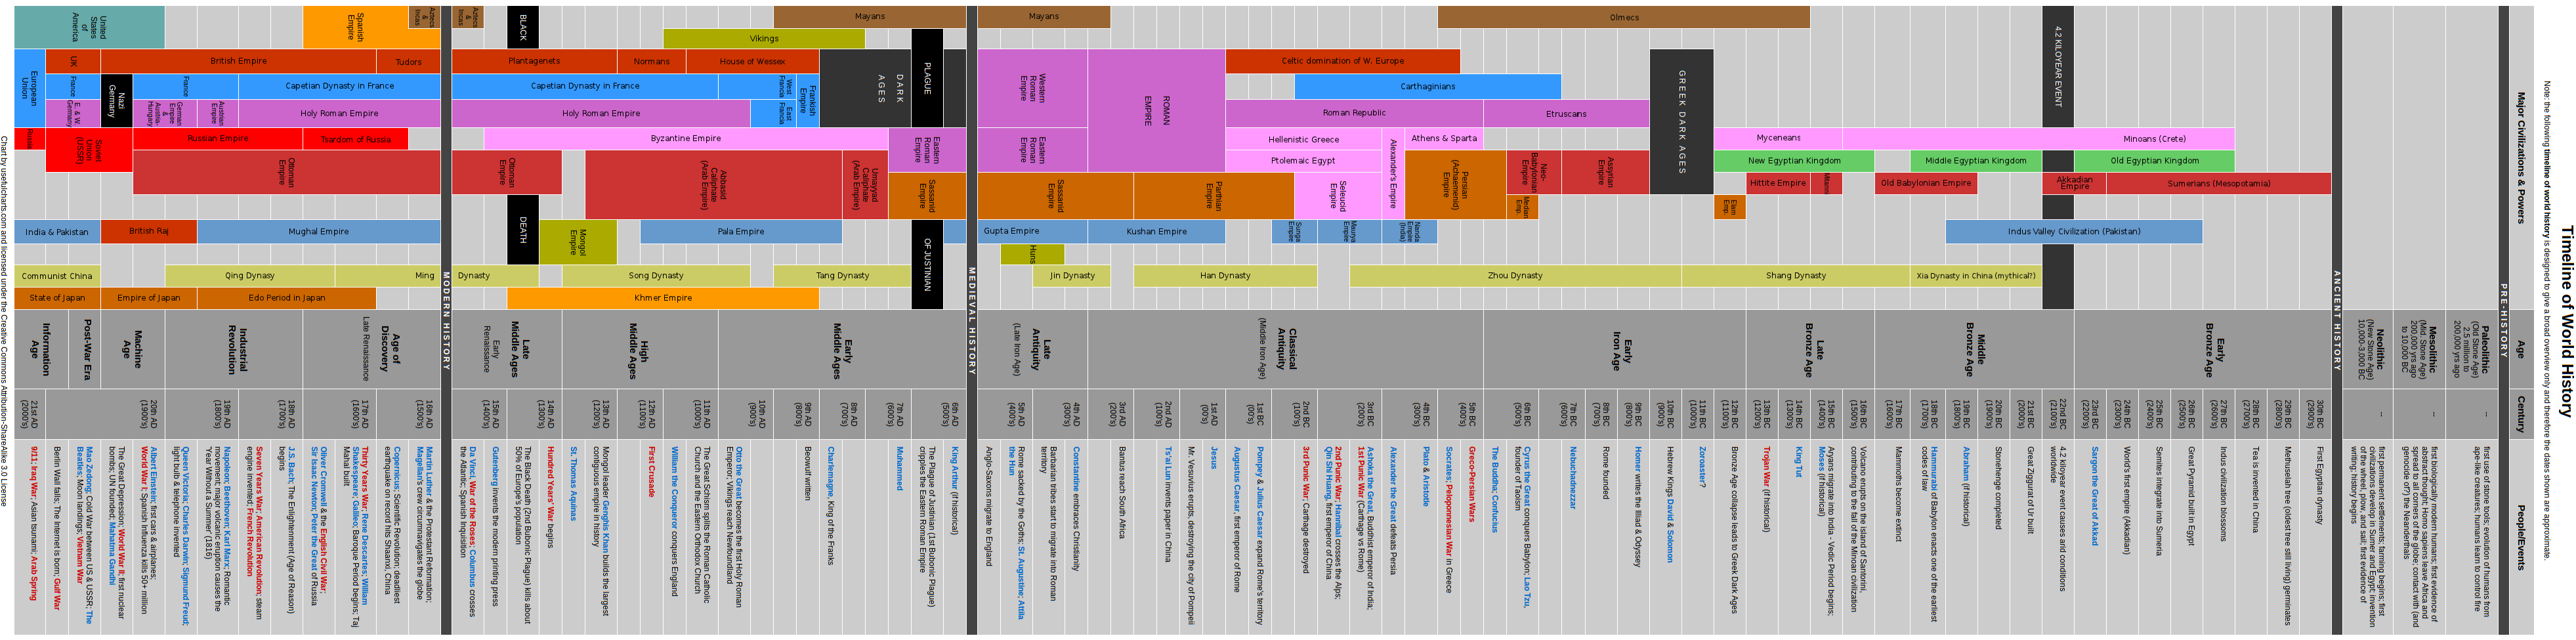 file timeline of world history png wikimedia commons